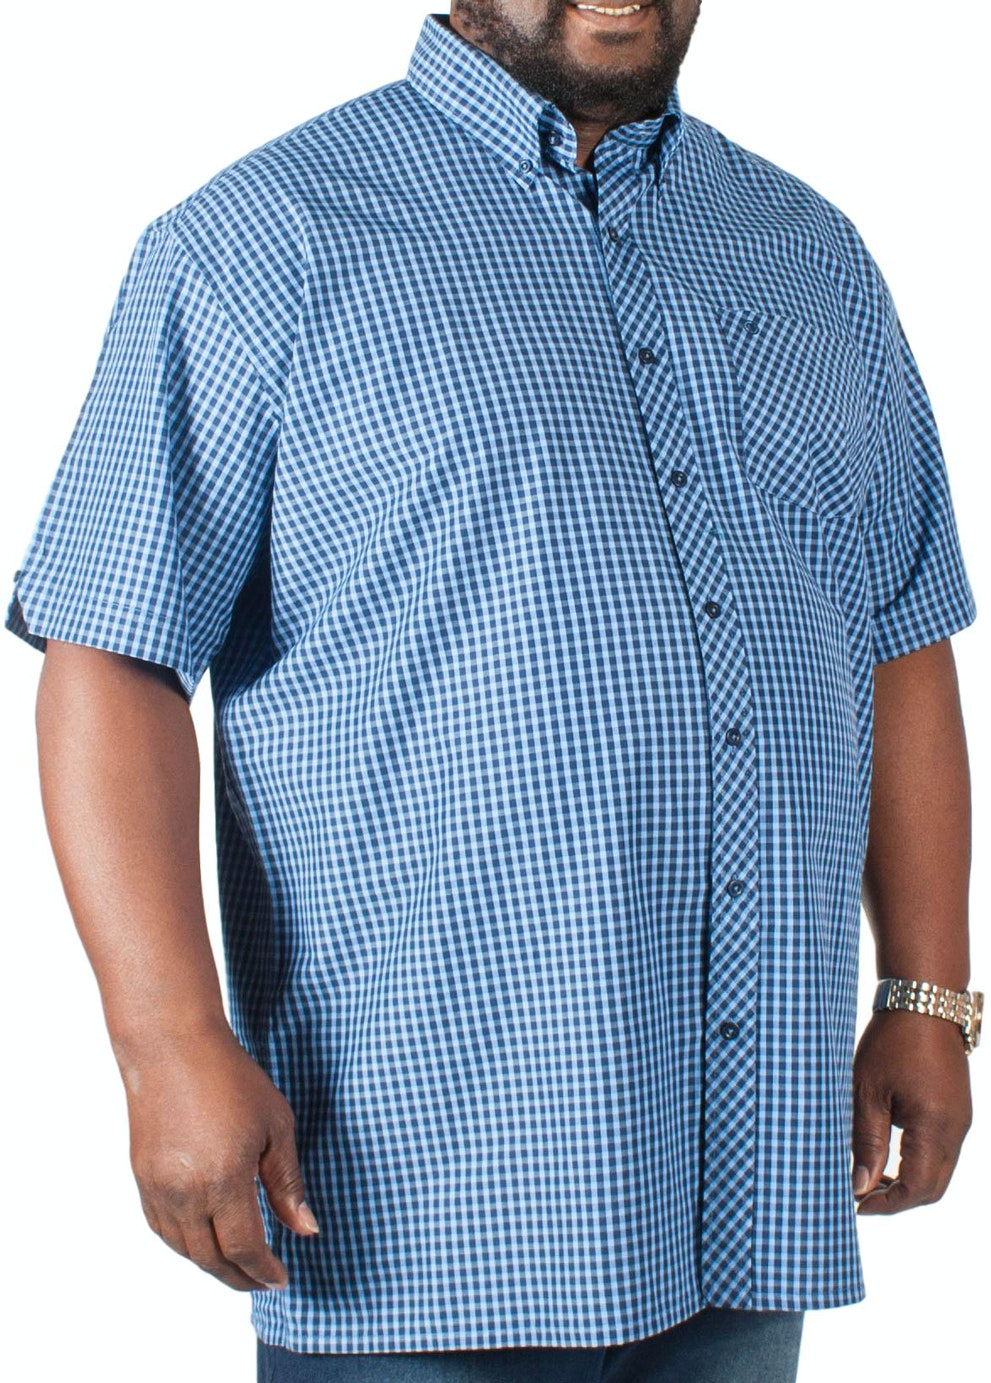 Espionage Short Sleeve Gingham Shirt Blue/Navy